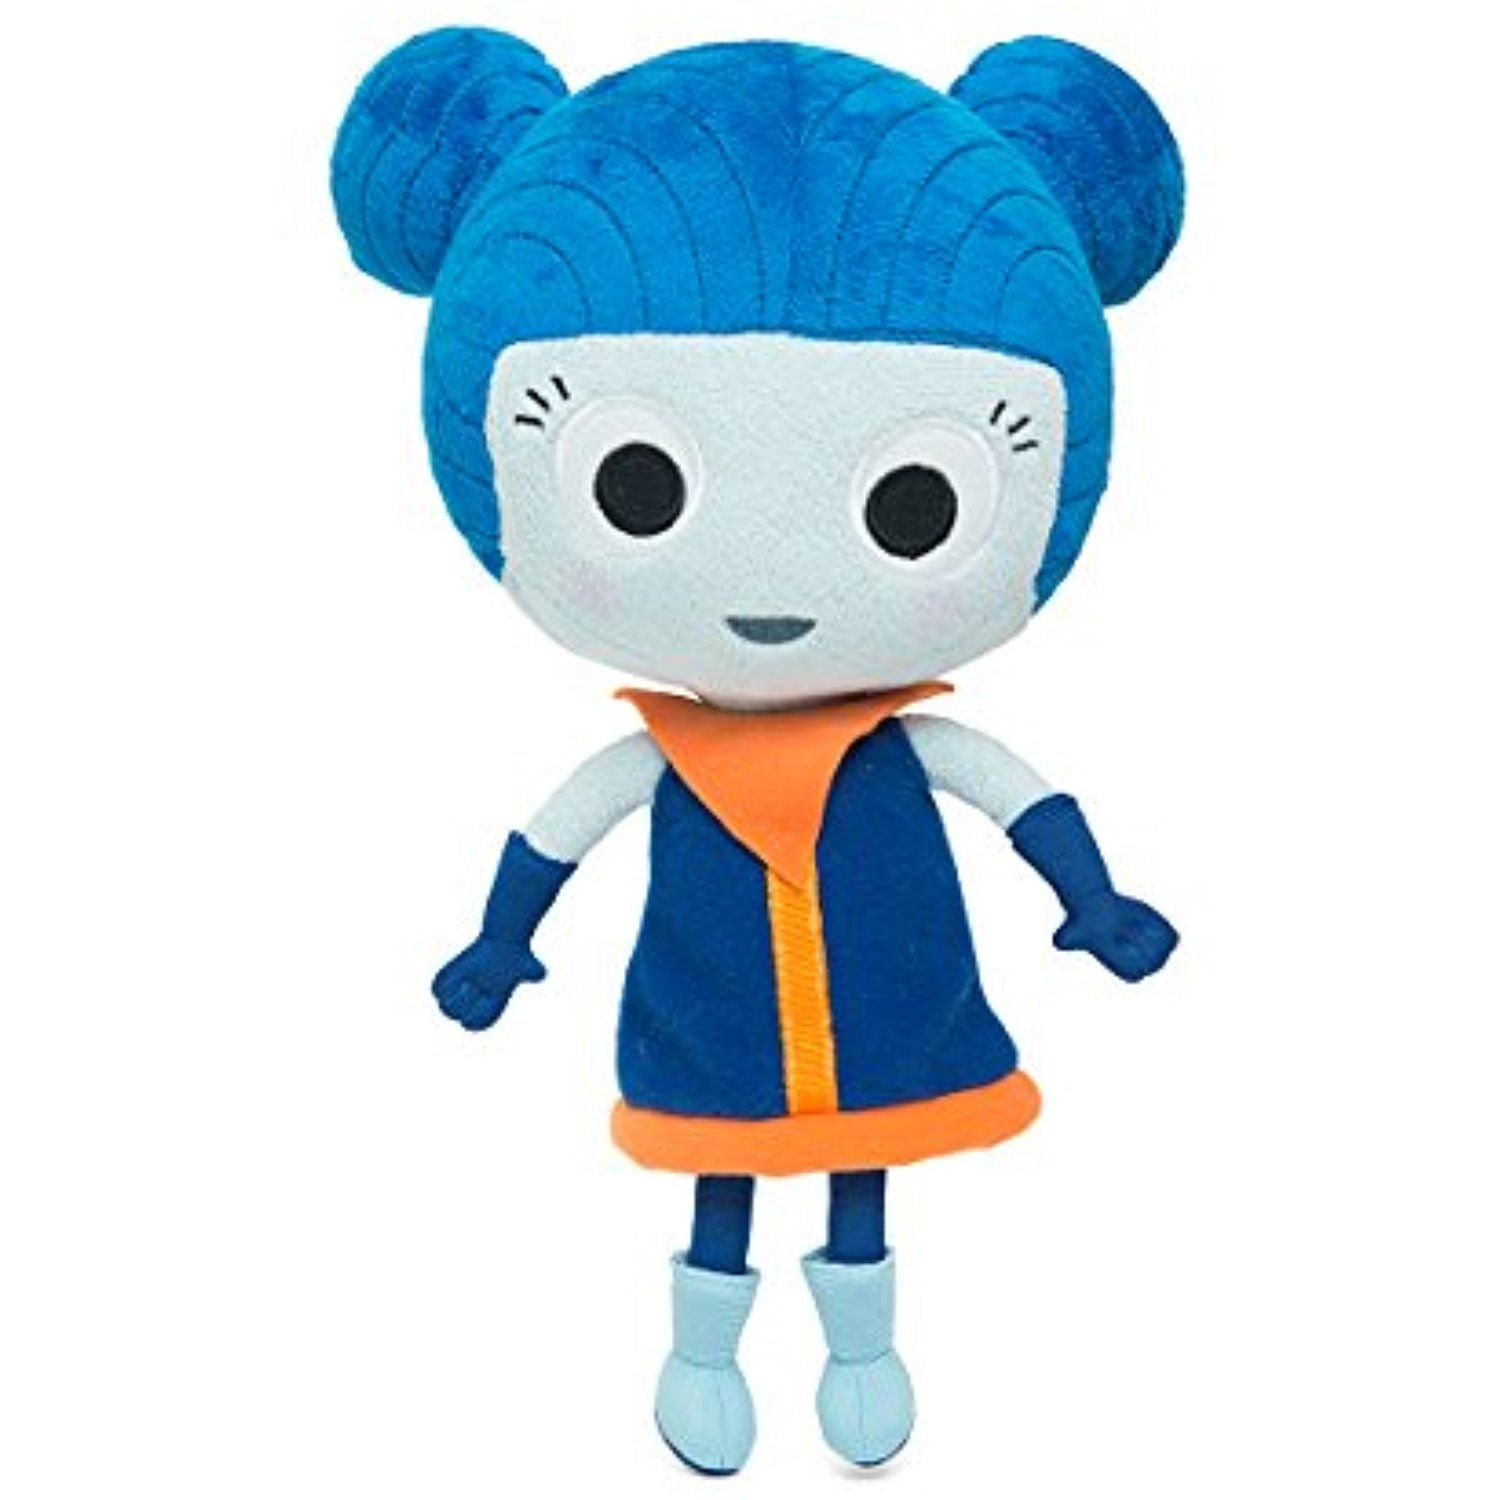 Predownload: Baby First Tv Giggs Plush Toy Abc Galaxy Perfect Birthday Gift You Can Find More Details By Baby First Tv Childrens Christmas Crafts Animal Plush Toys [ 1500 x 1500 Pixel ]